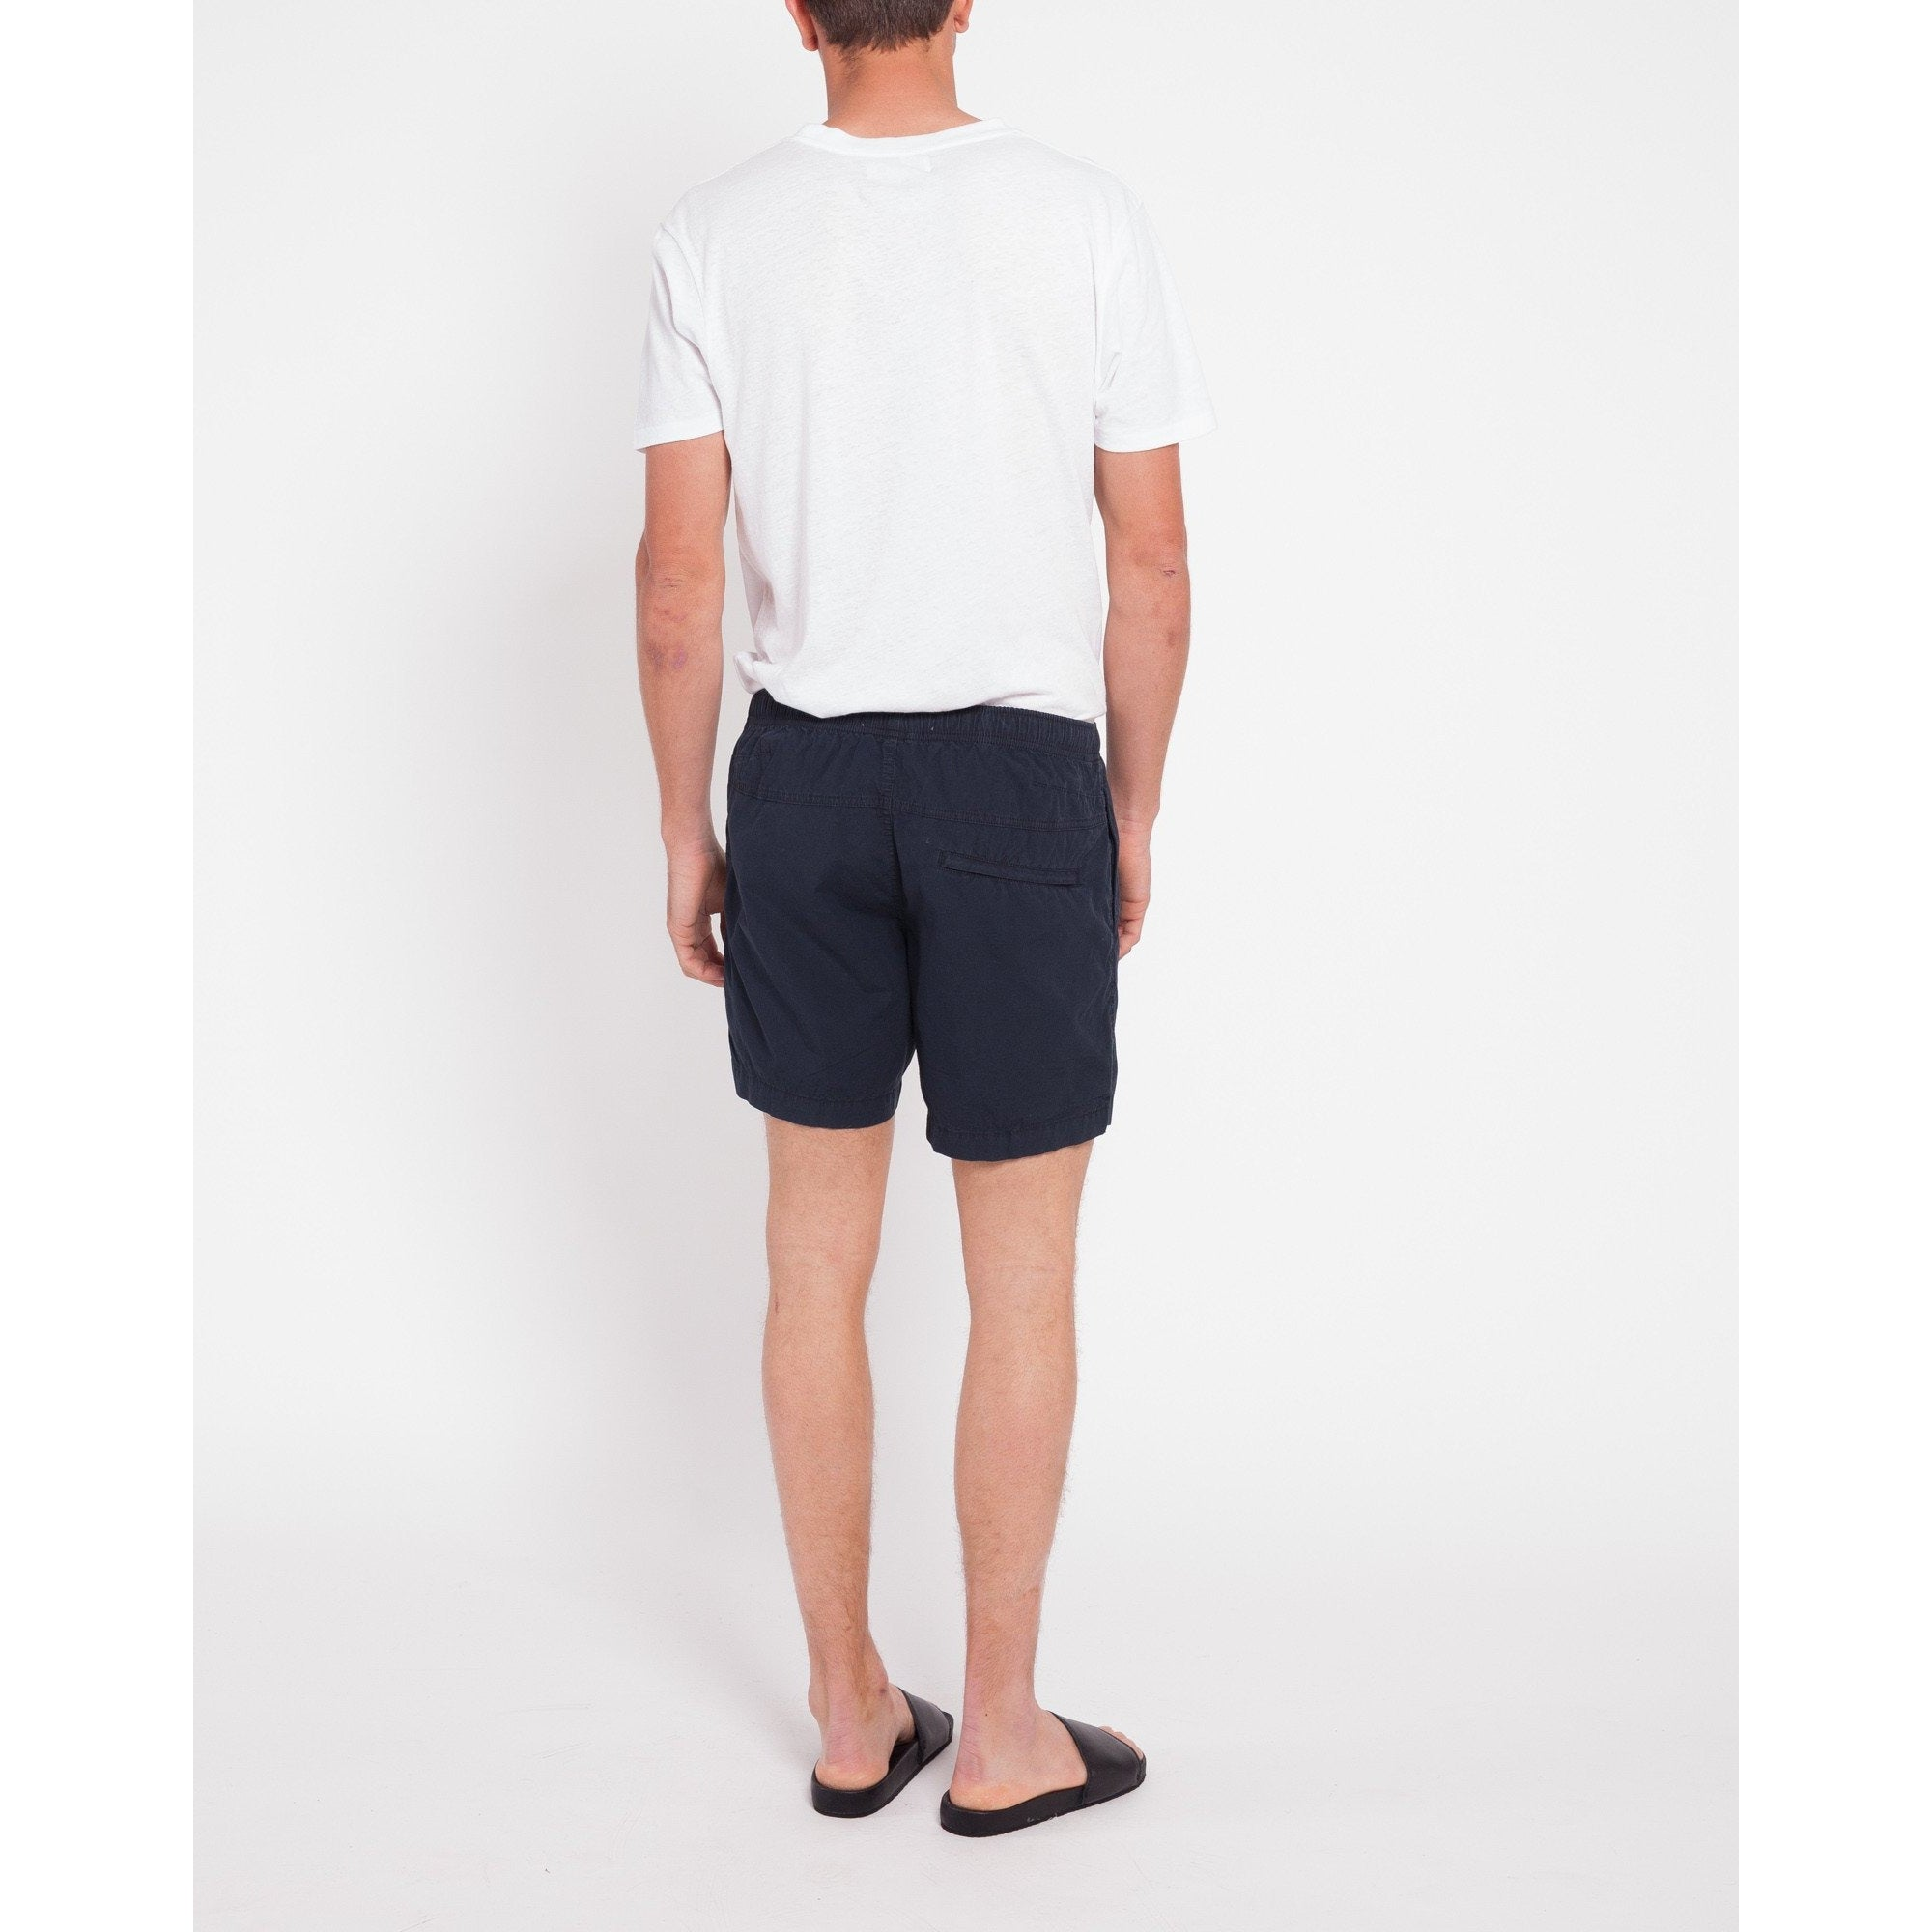 Assembly Label - ocean swim short navy